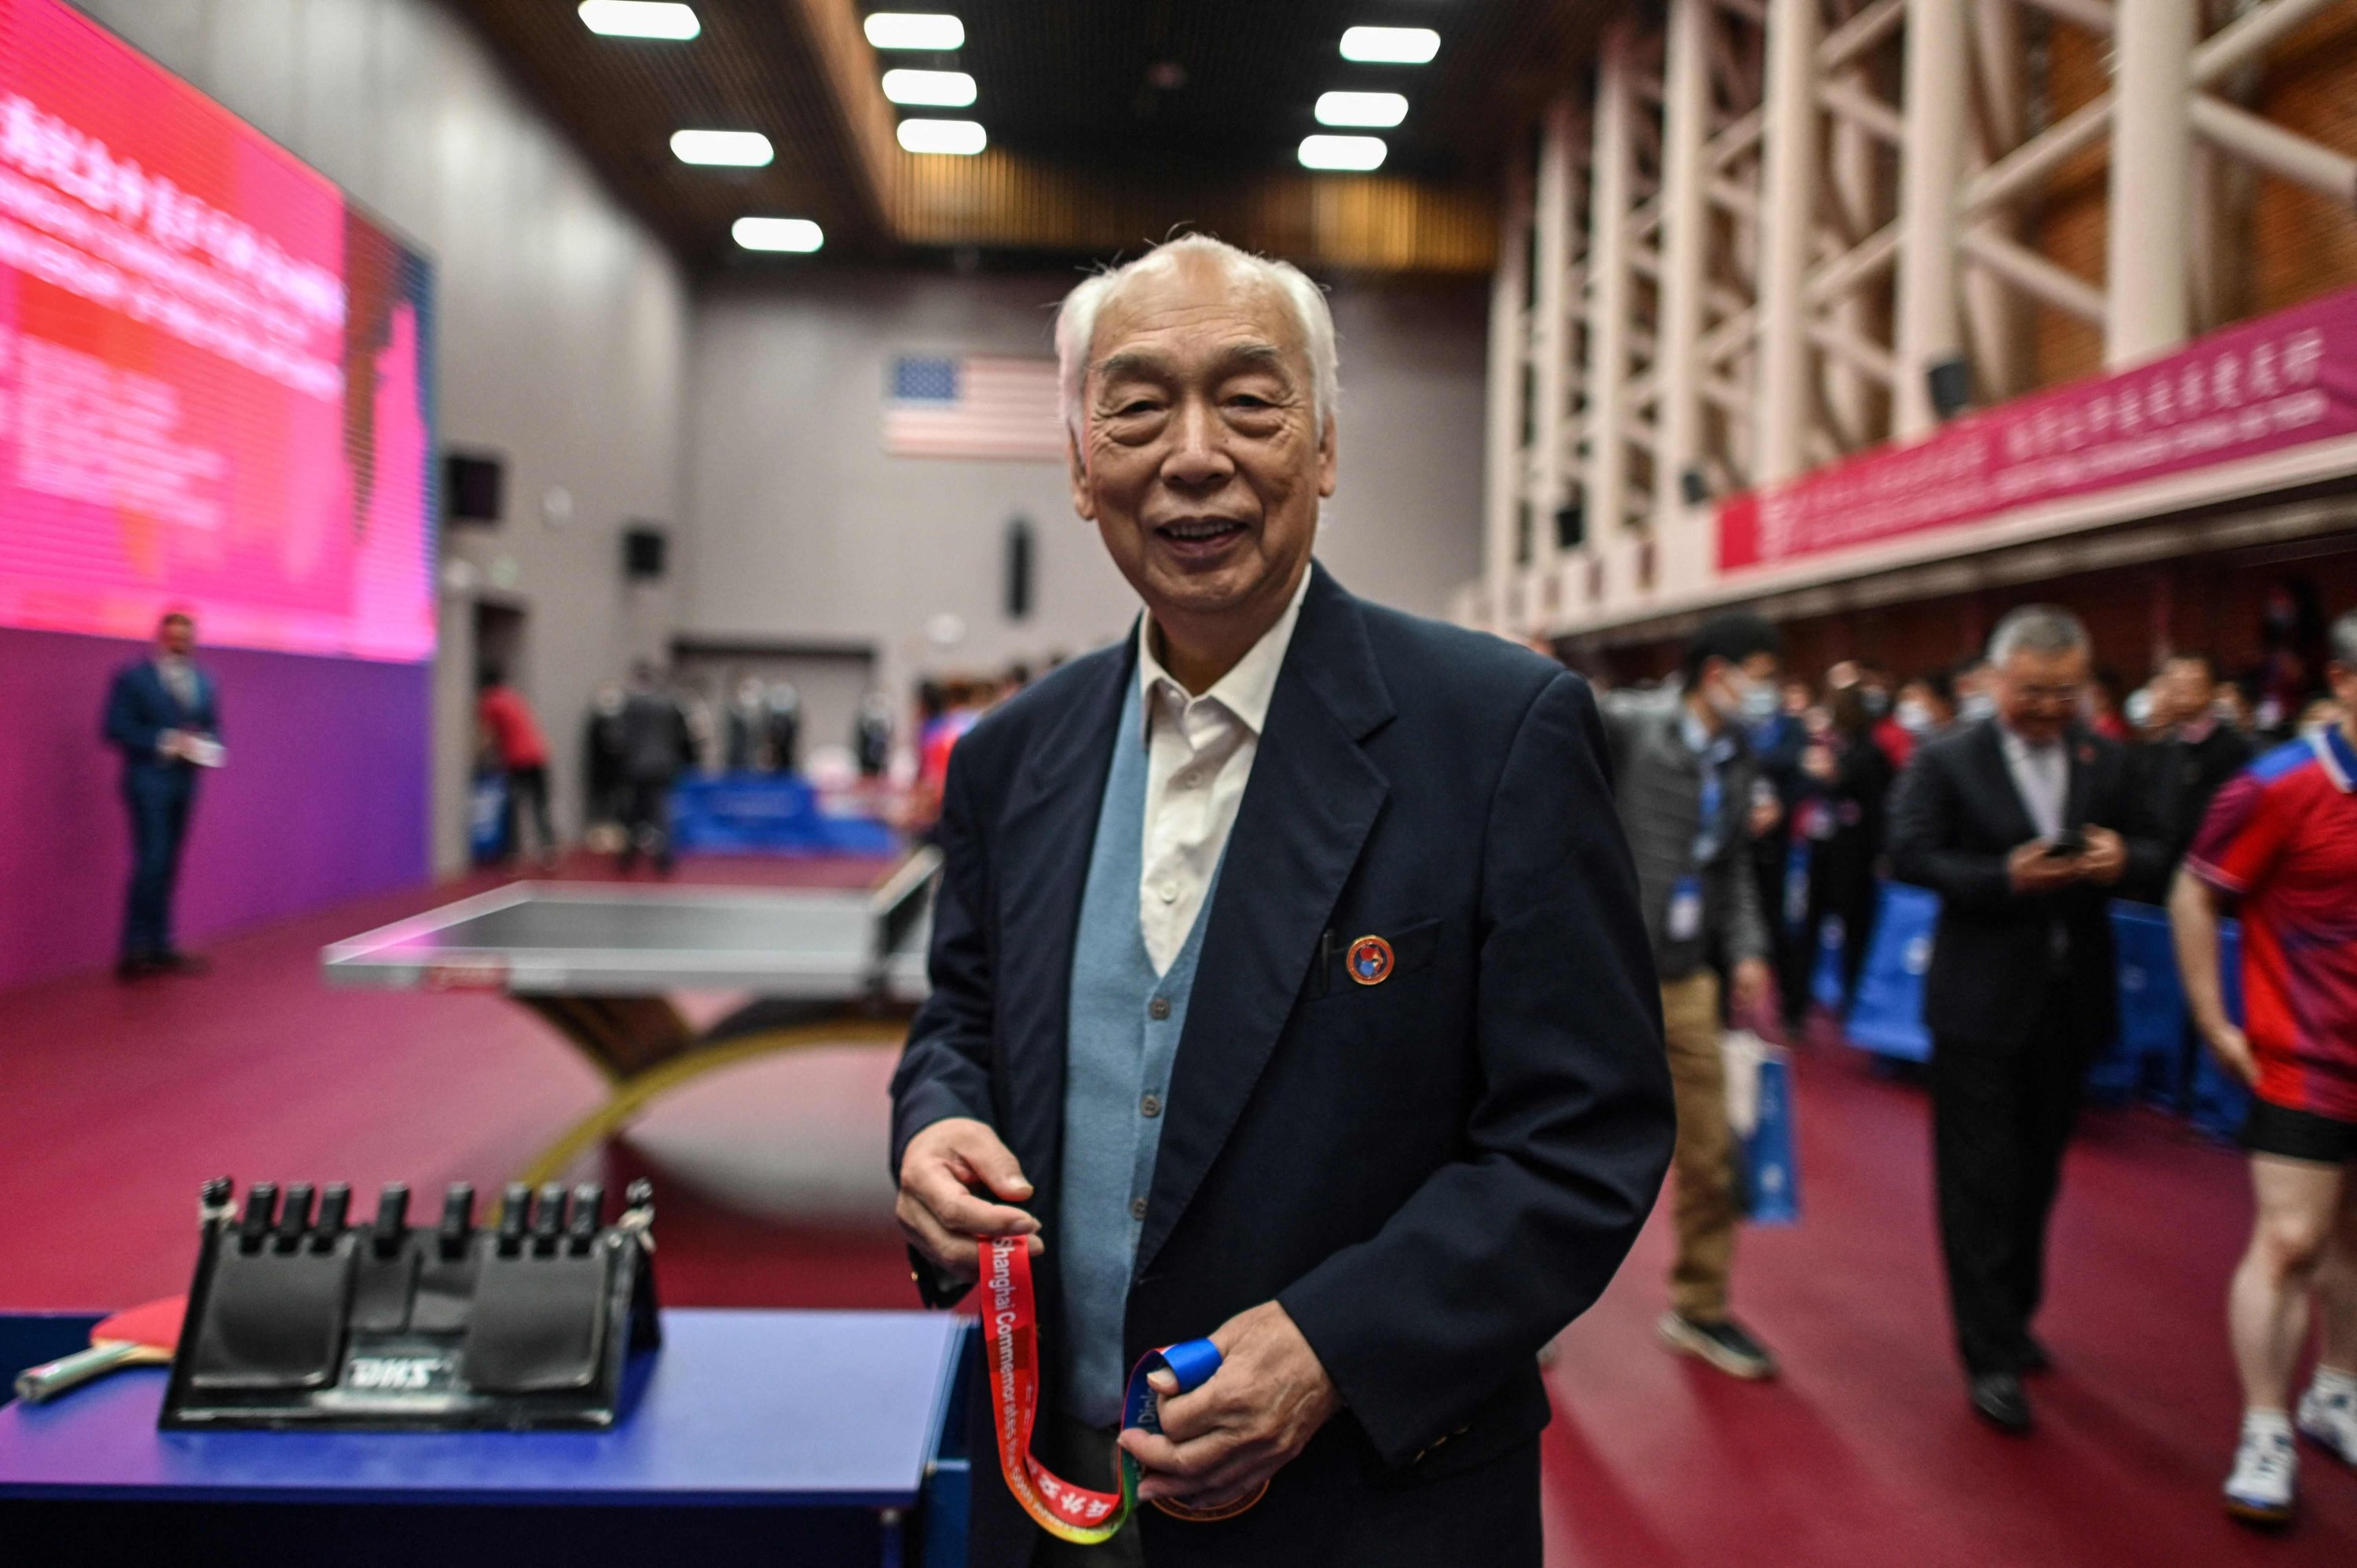 China's former table tennis player and Ping Pong Diplomacy participant Zhang Xielin during a ceremony to mark the 50th anniversary of the diplomatic event, at the International Table Tennis Federation museum in Shanghai, China, April 10, 2021. (AFP Photo)